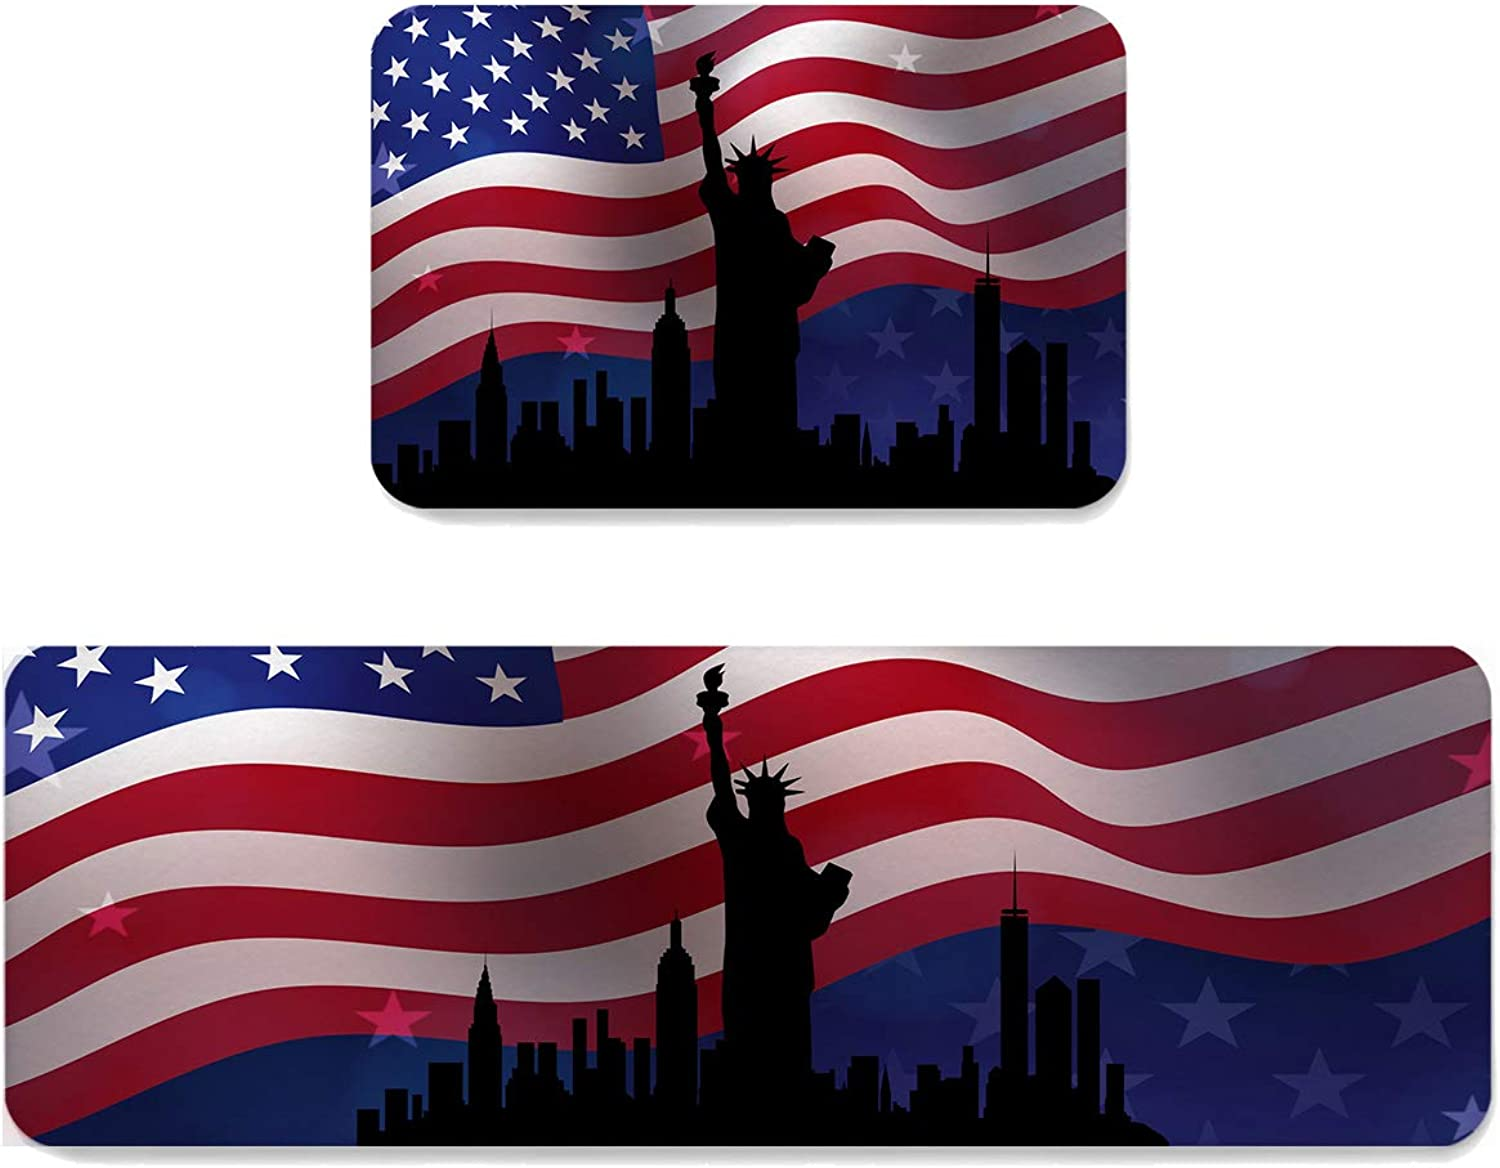 Sun-Shine Indoor Area Runner Rugs Water Absorb Doormats 2 Pieces, Patriotic Statue of Liberty Non-Slip Mat Entrance shoes Scraper Carpet Pads for Kitchen Hallway Floor Decorations, United States Flag